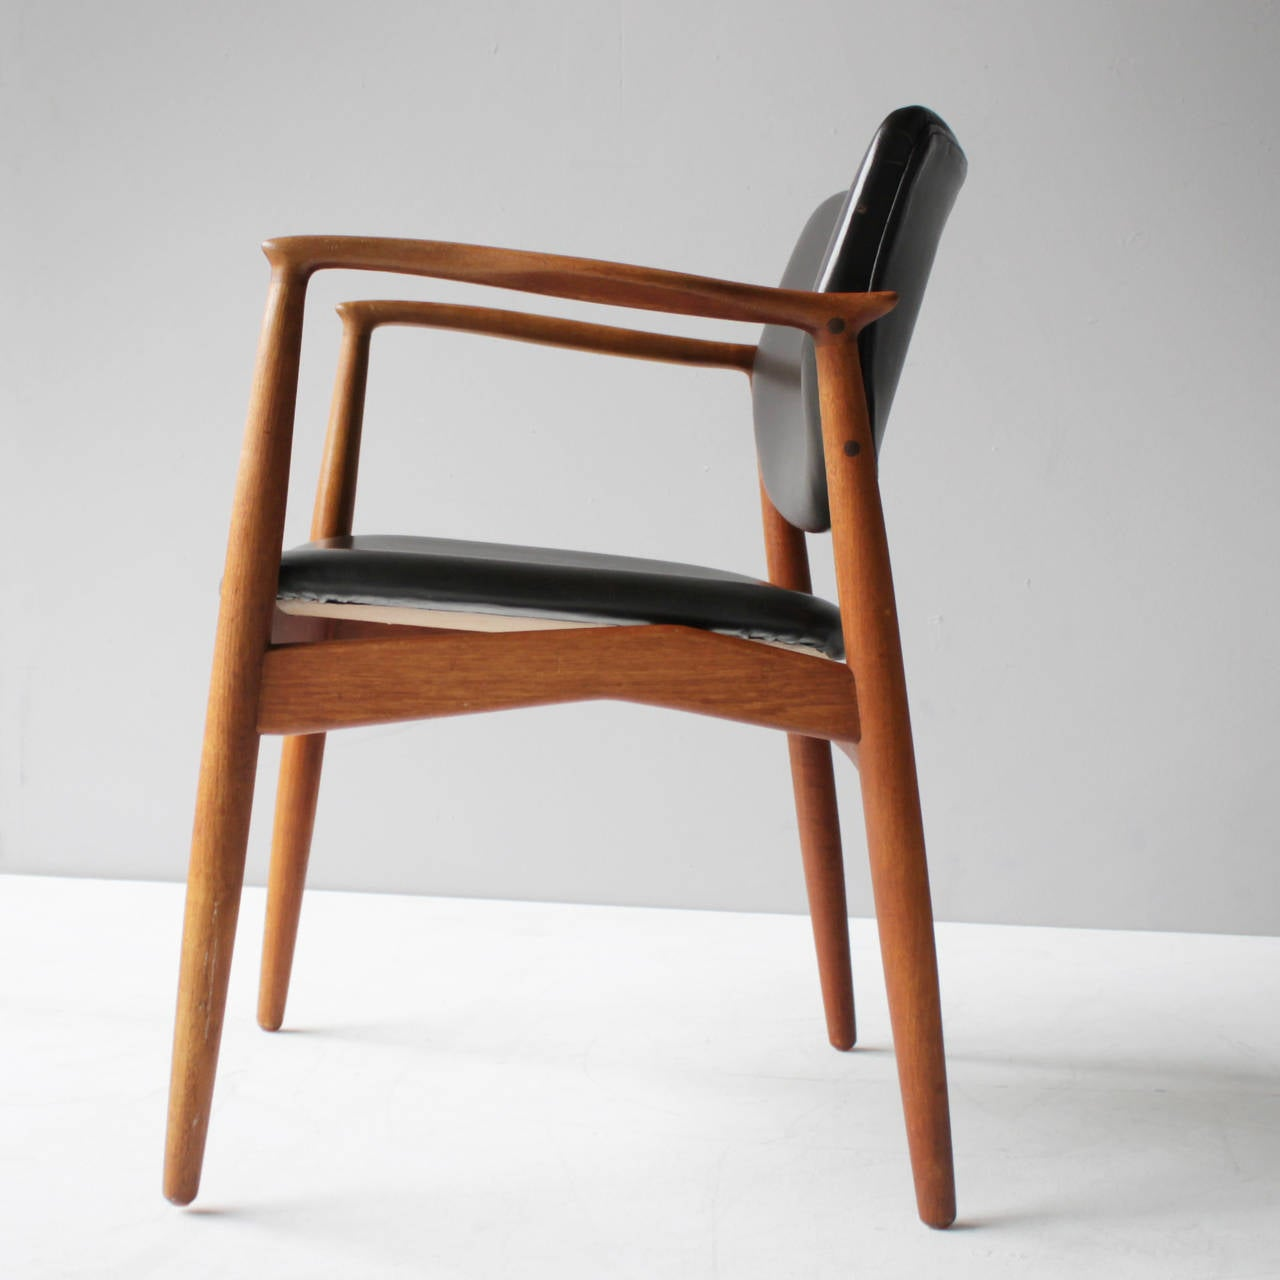 Teak and Leather Chair by Eric Buck for Ø. Mobler, Denmark In Excellent Condition For Sale In JM Haarlem, NL